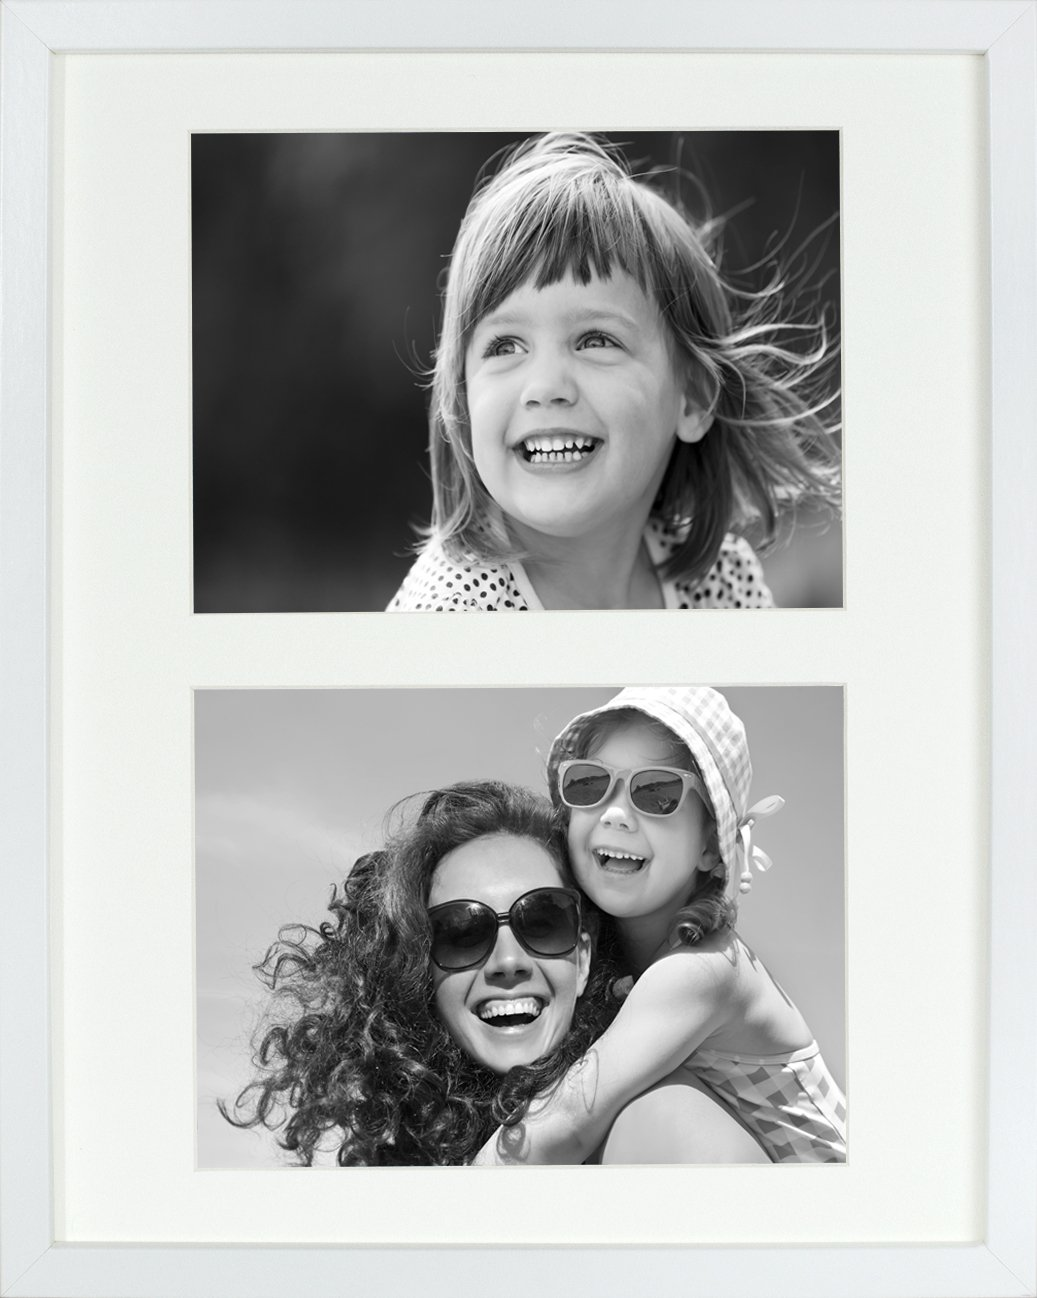 17 x 23 cm (7 x 9-Inch) - 2 Aperture Picture Photo Frame for 6 x 4-Inch photo, WHITE BD ART